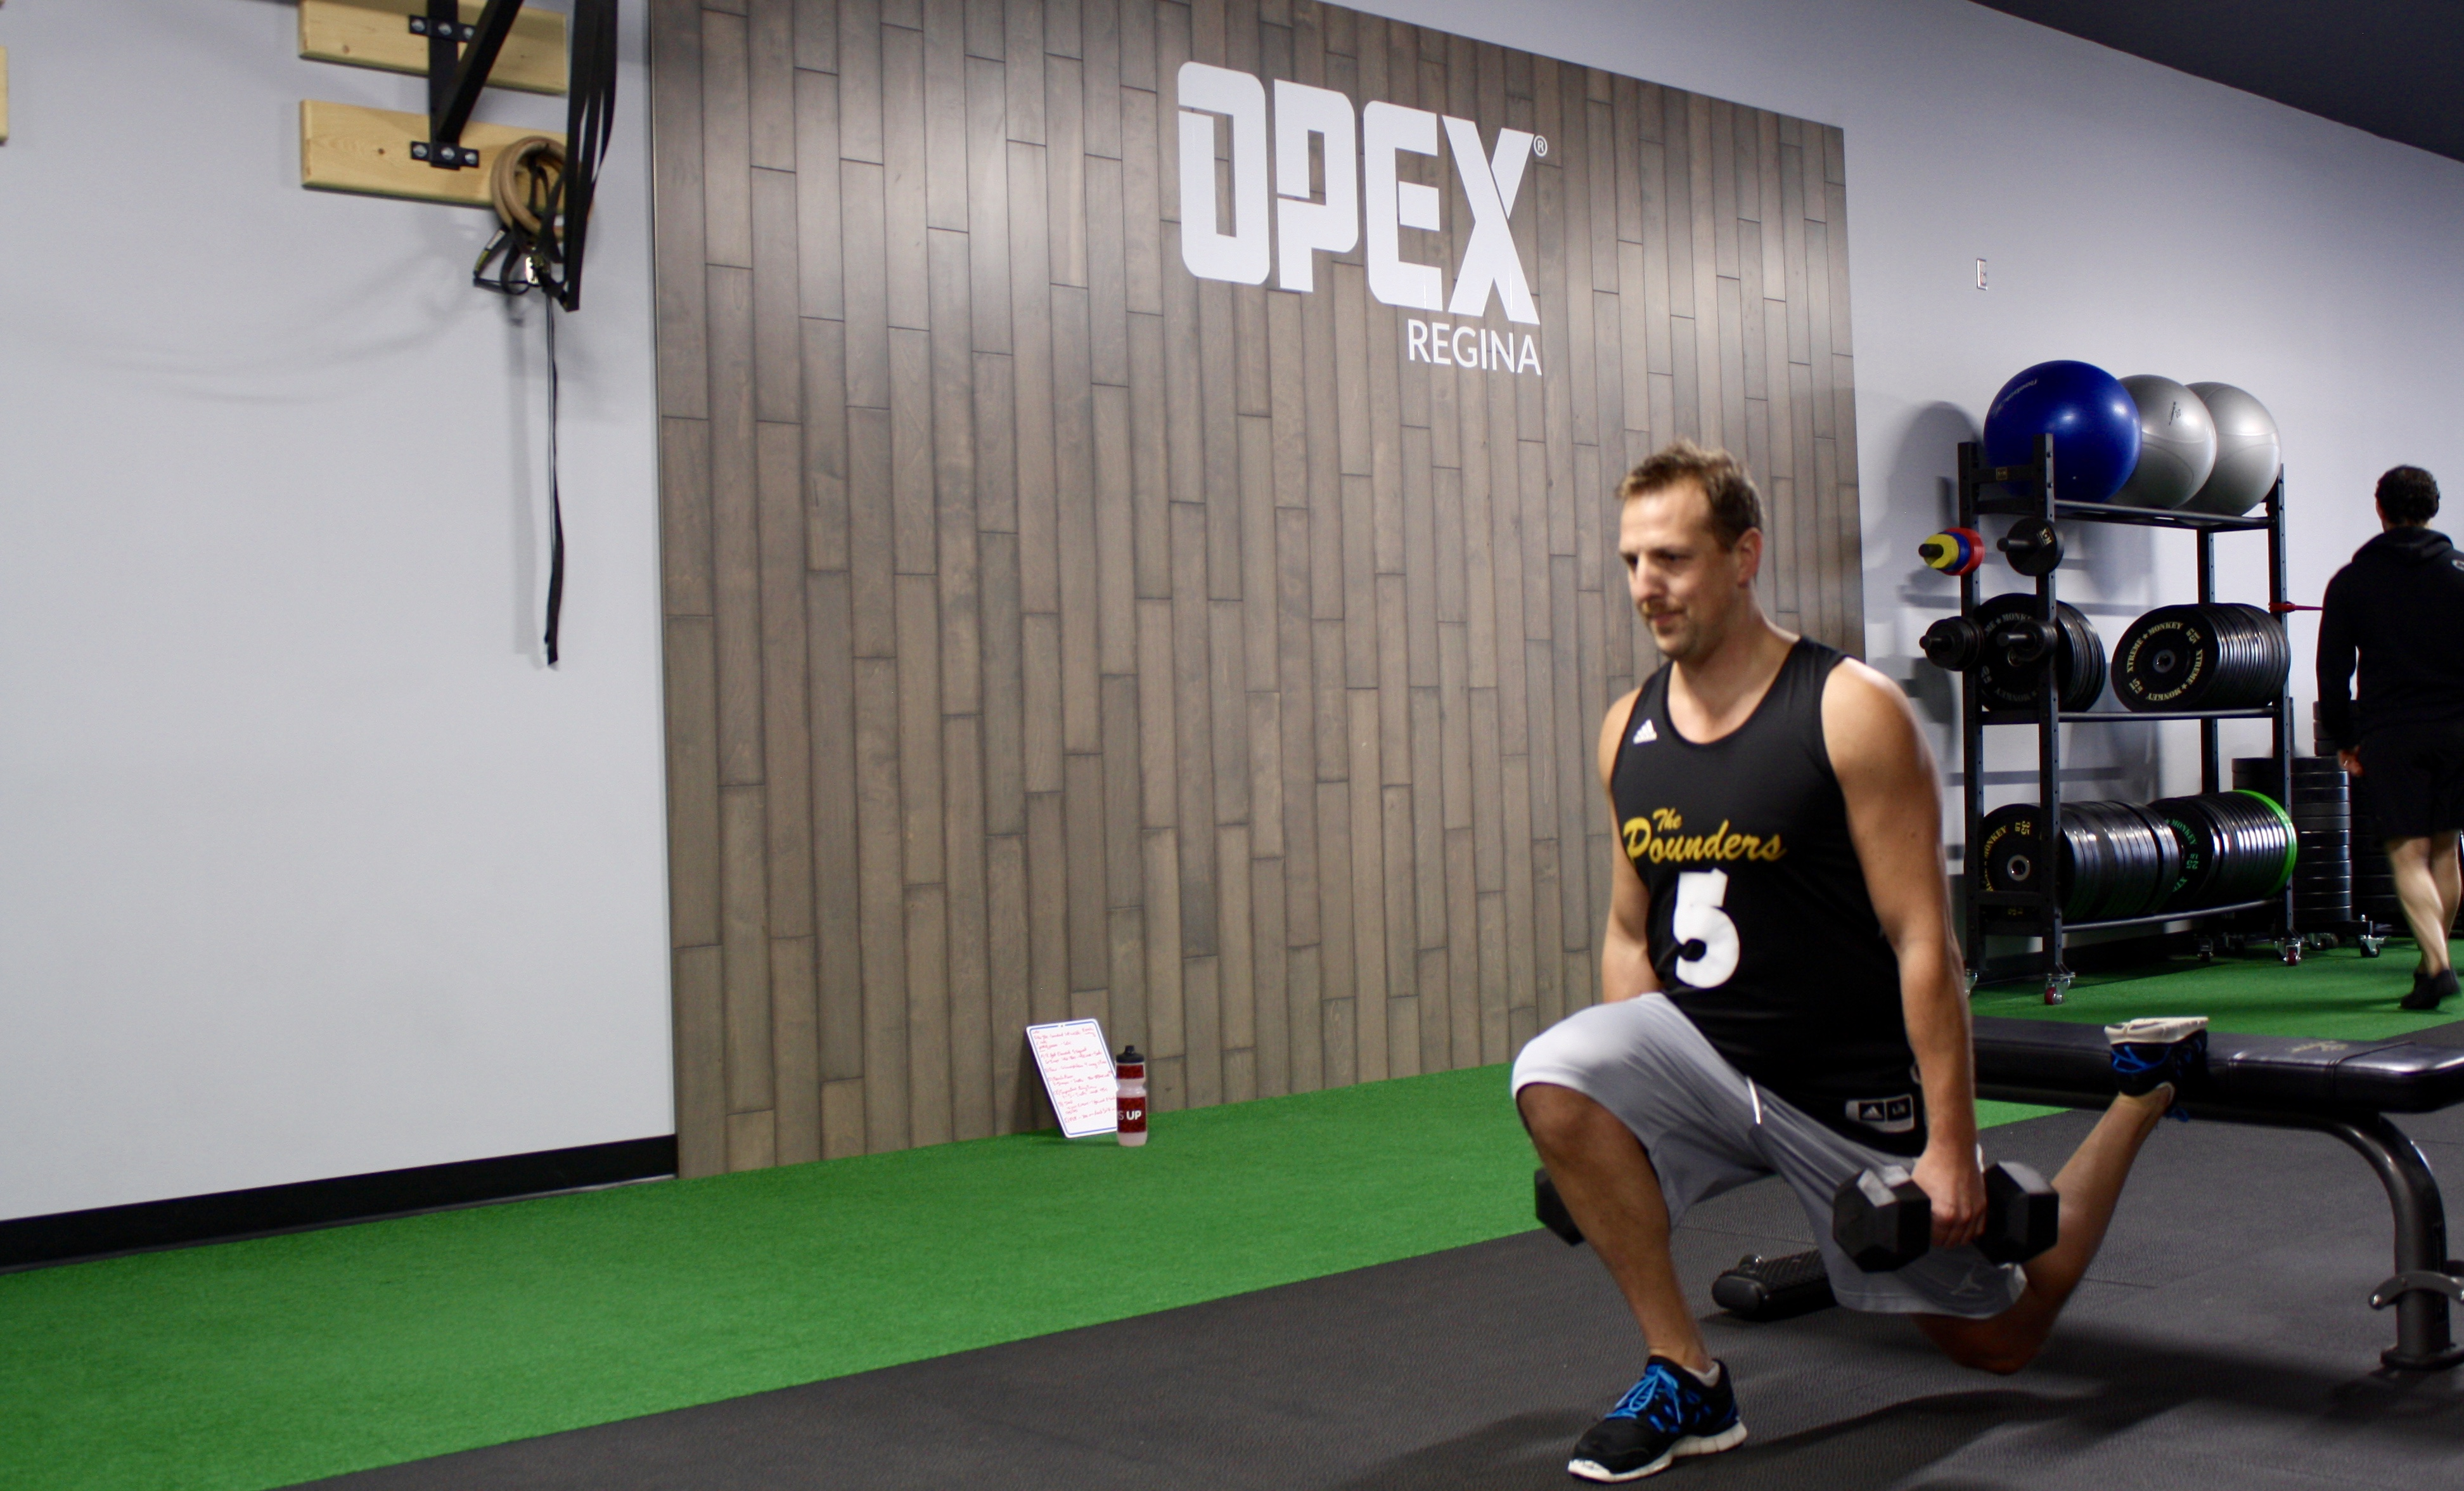 Andrew getting his reps in